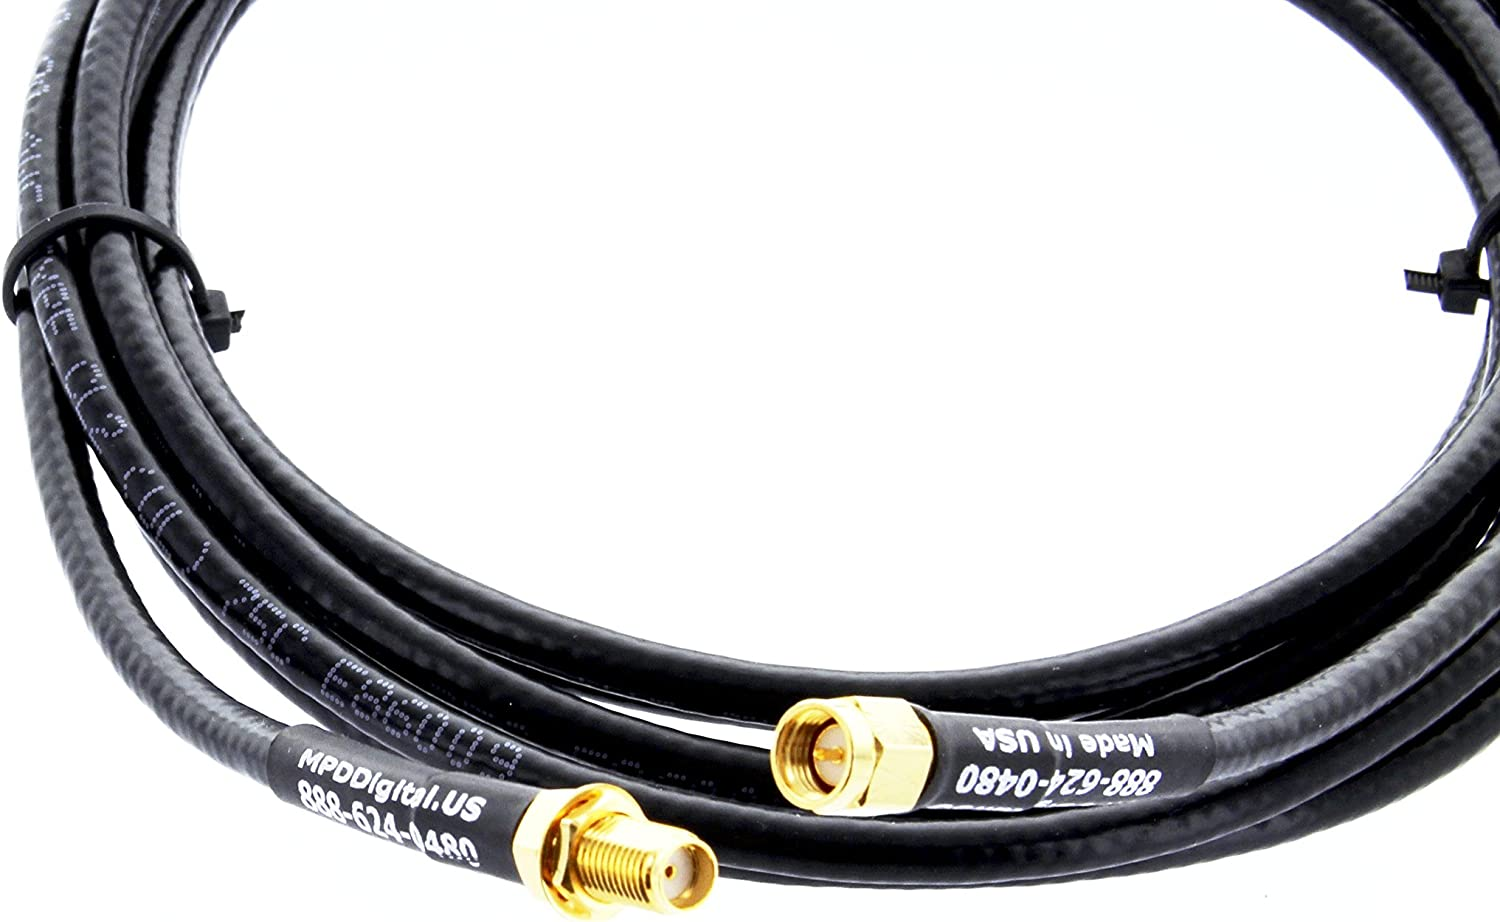 LMR-195 SMA Female Bulkhead to SMA Male Connector Extension Cable LMR195 1 Meter